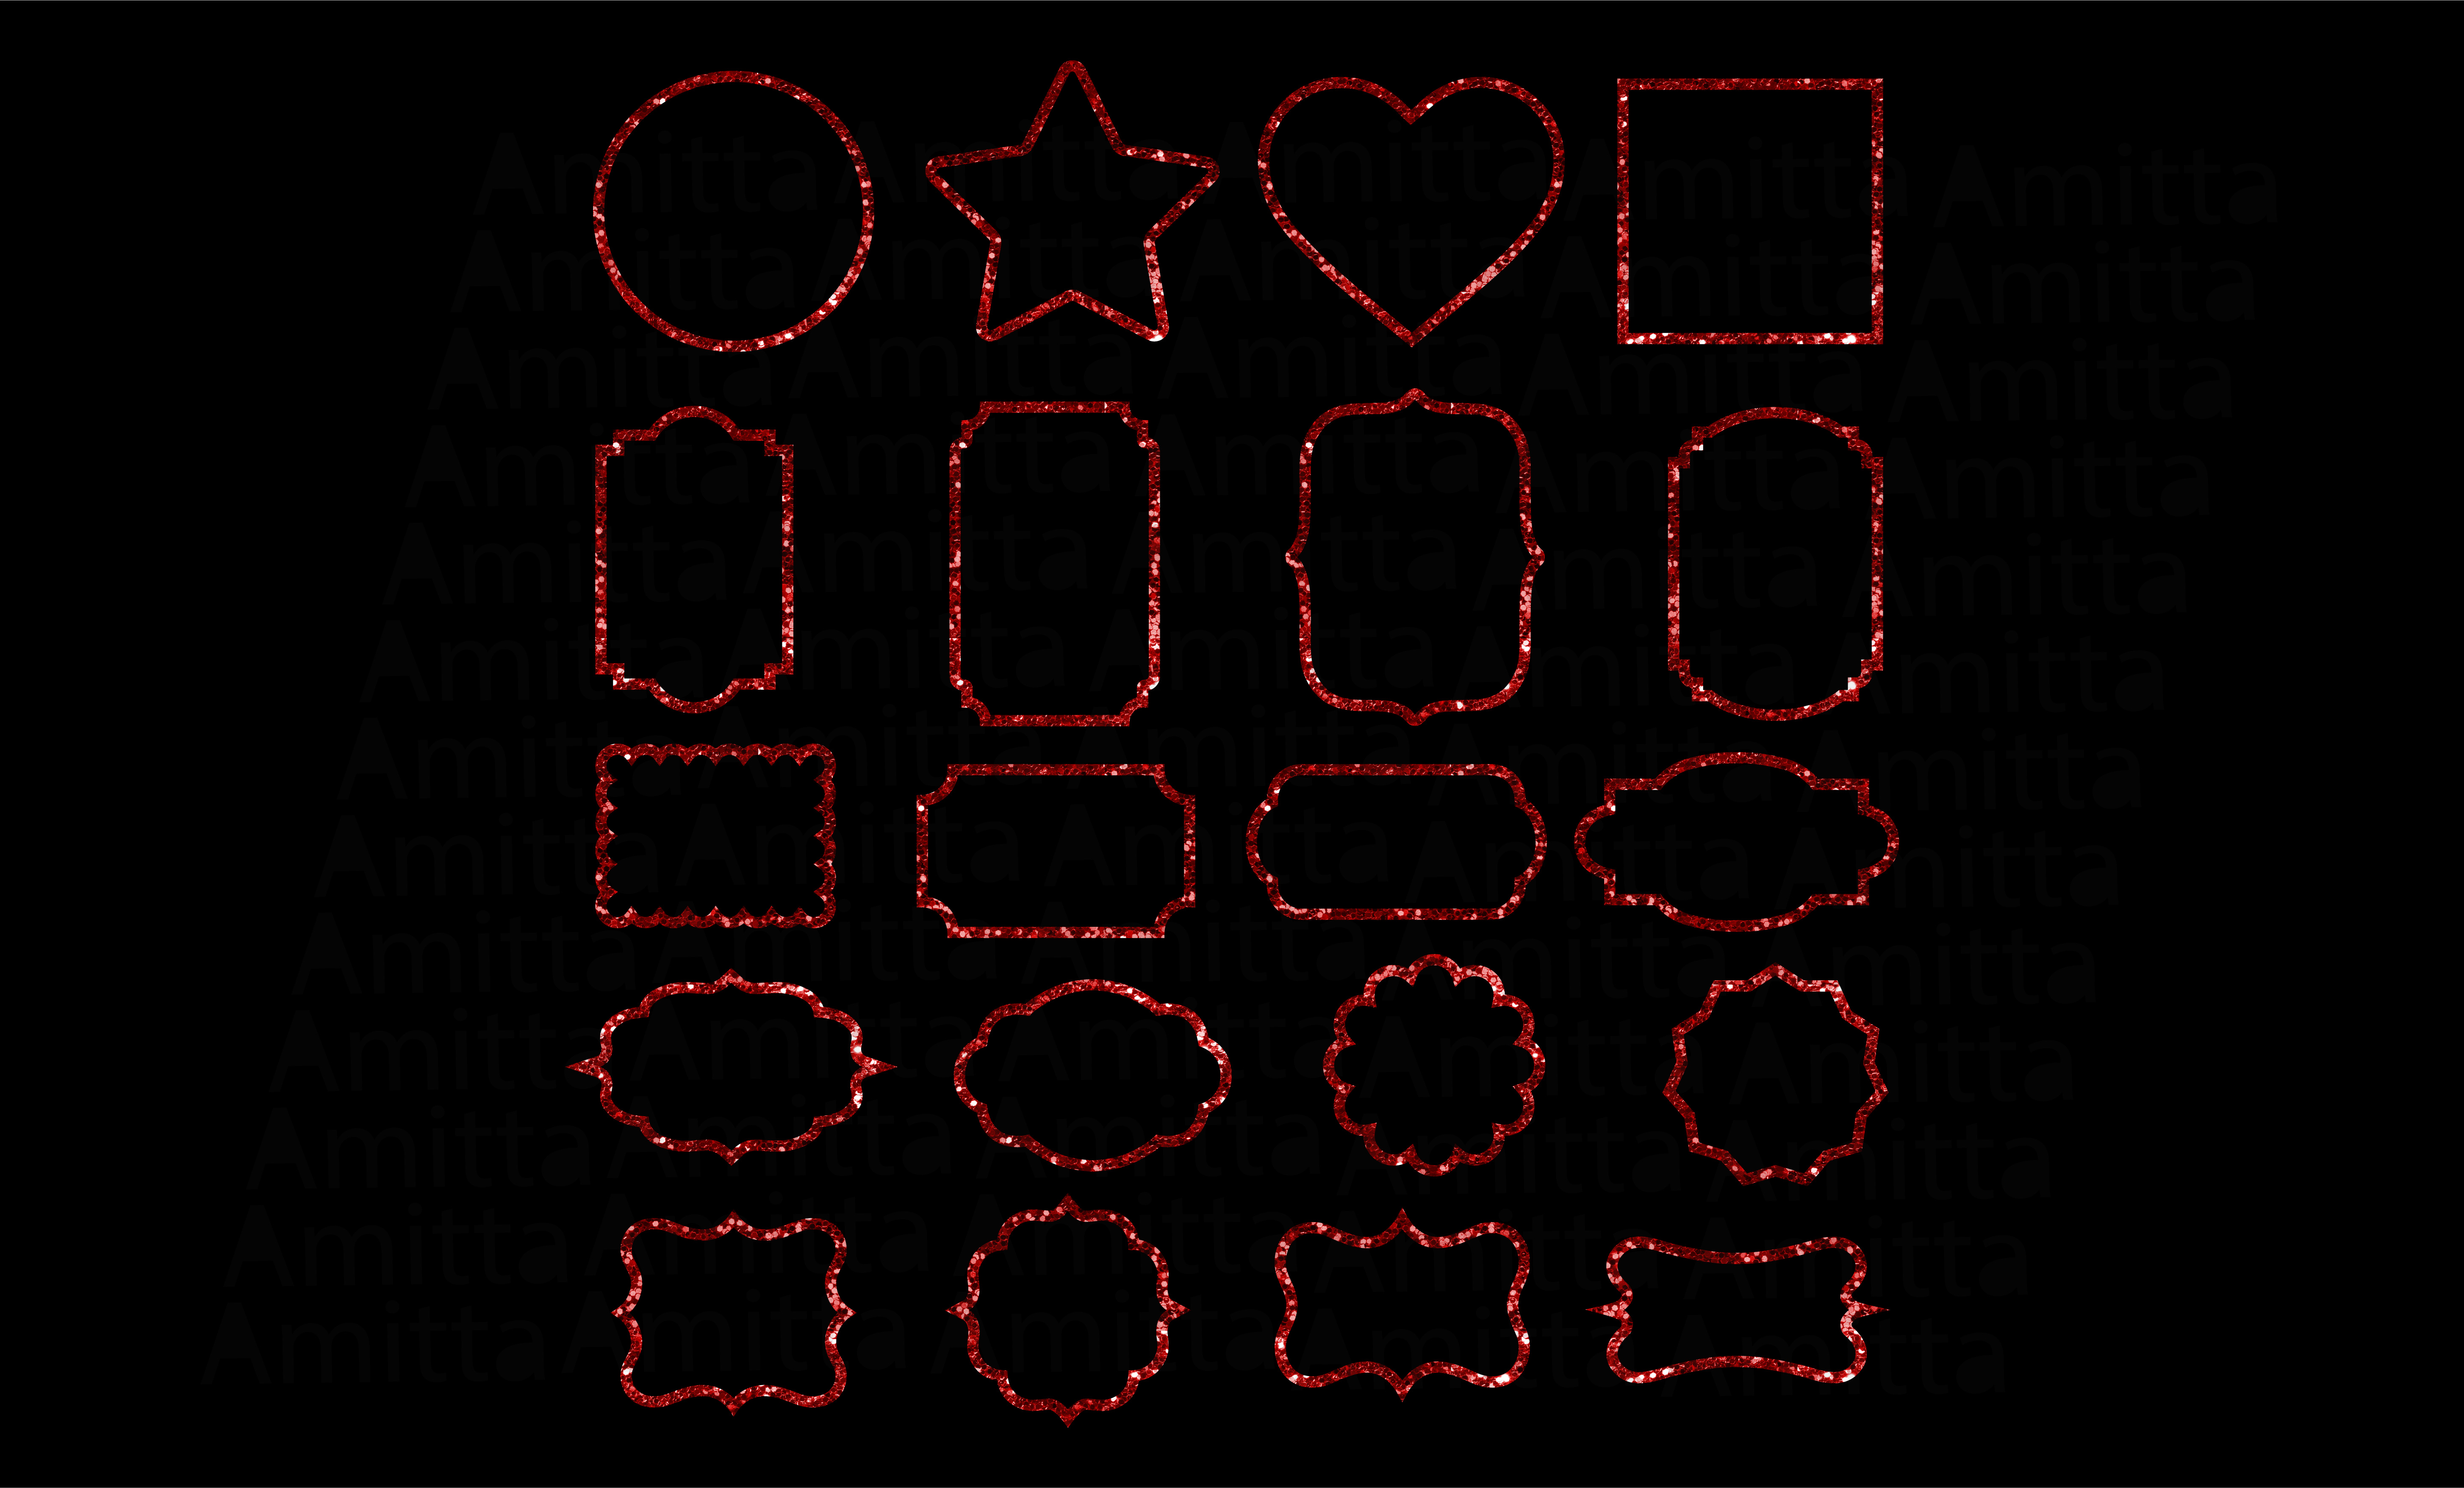 Download Free Red Glitter Frames Clipart Graphic By Amitta Creative Fabrica for Cricut Explore, Silhouette and other cutting machines.